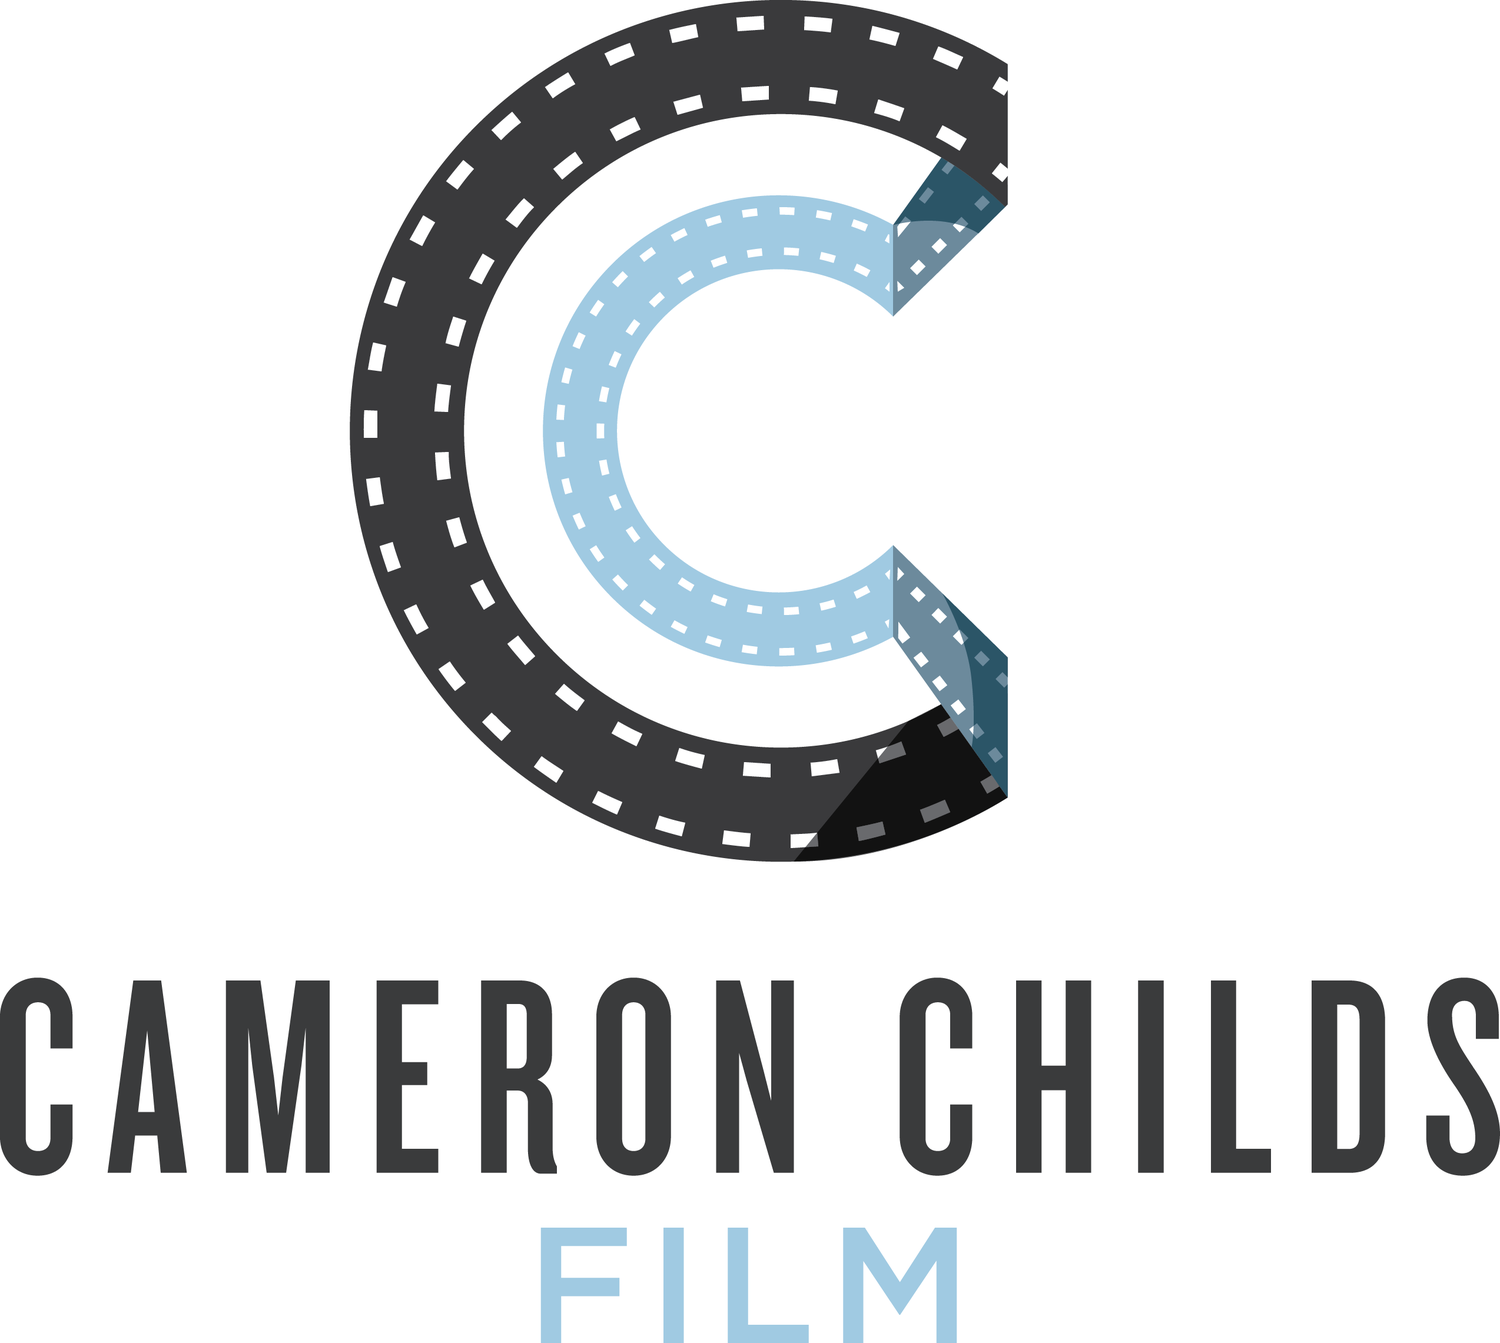 CAMERON CHILDS FILM